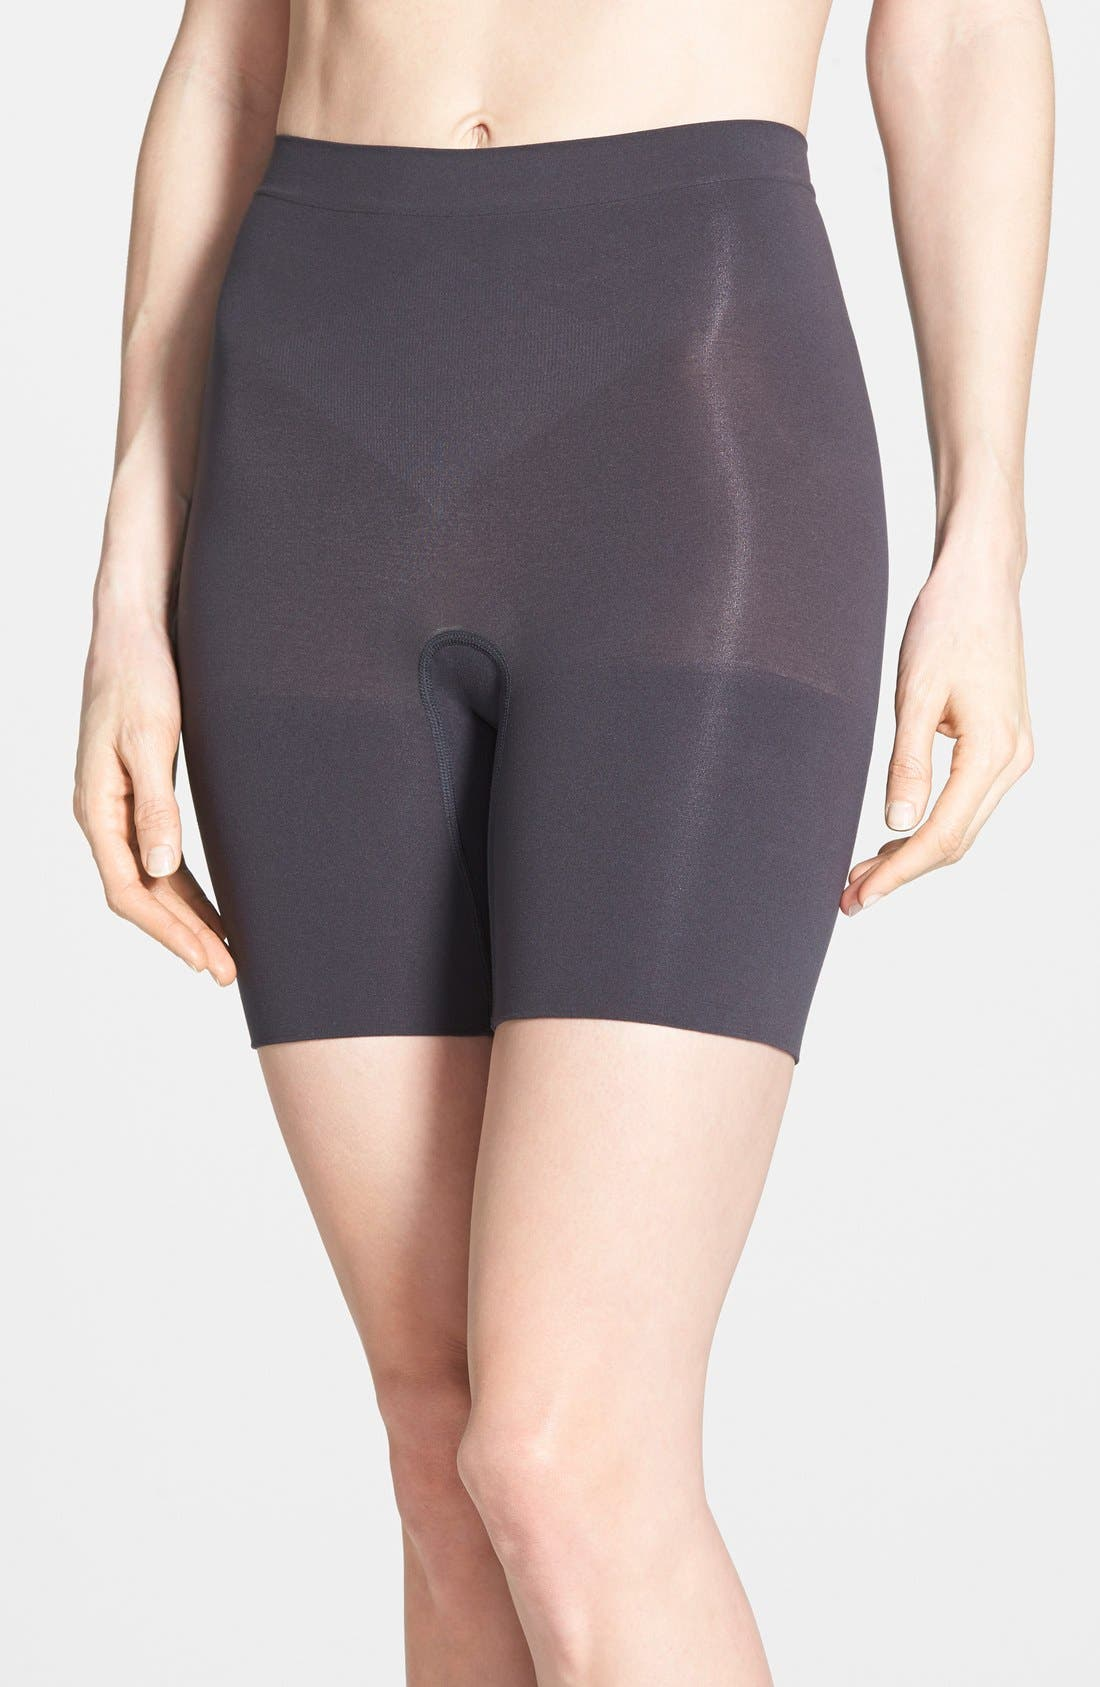 Power Short Mid Thigh Shaper,                         Main,                         color, Very Black